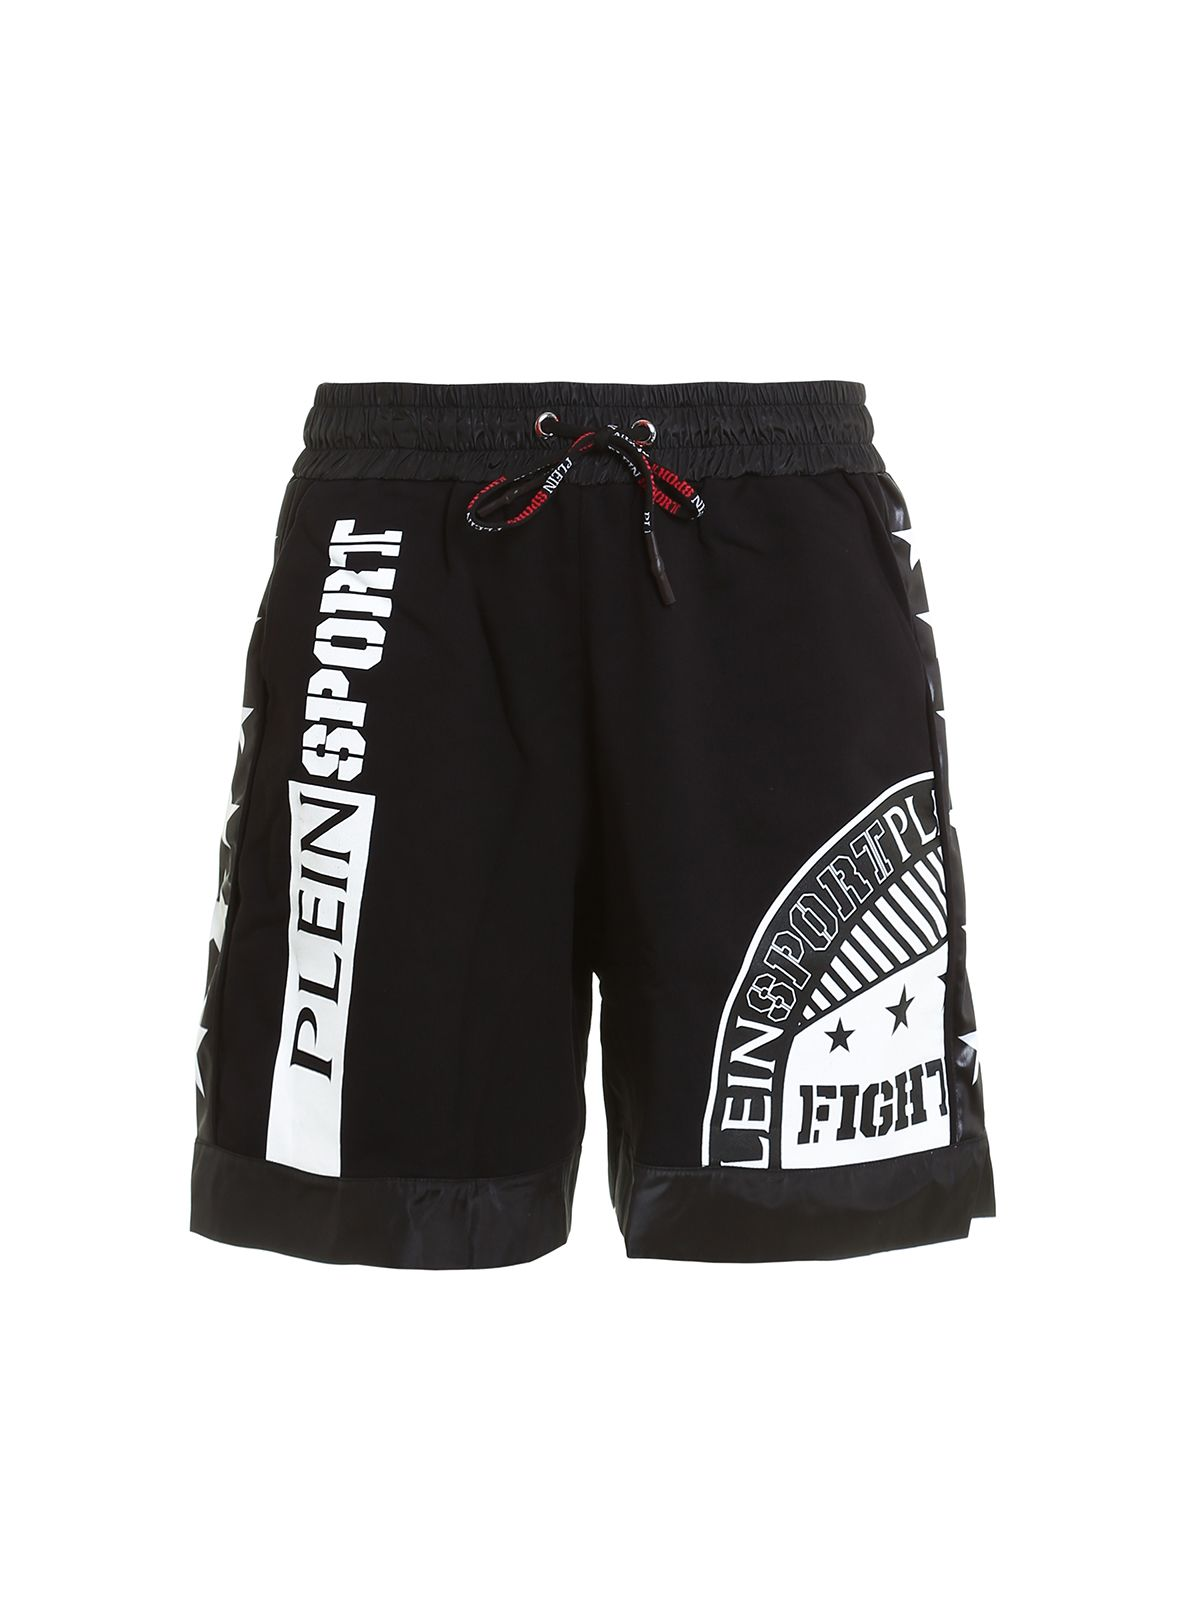 Ddt Boxing Shorts